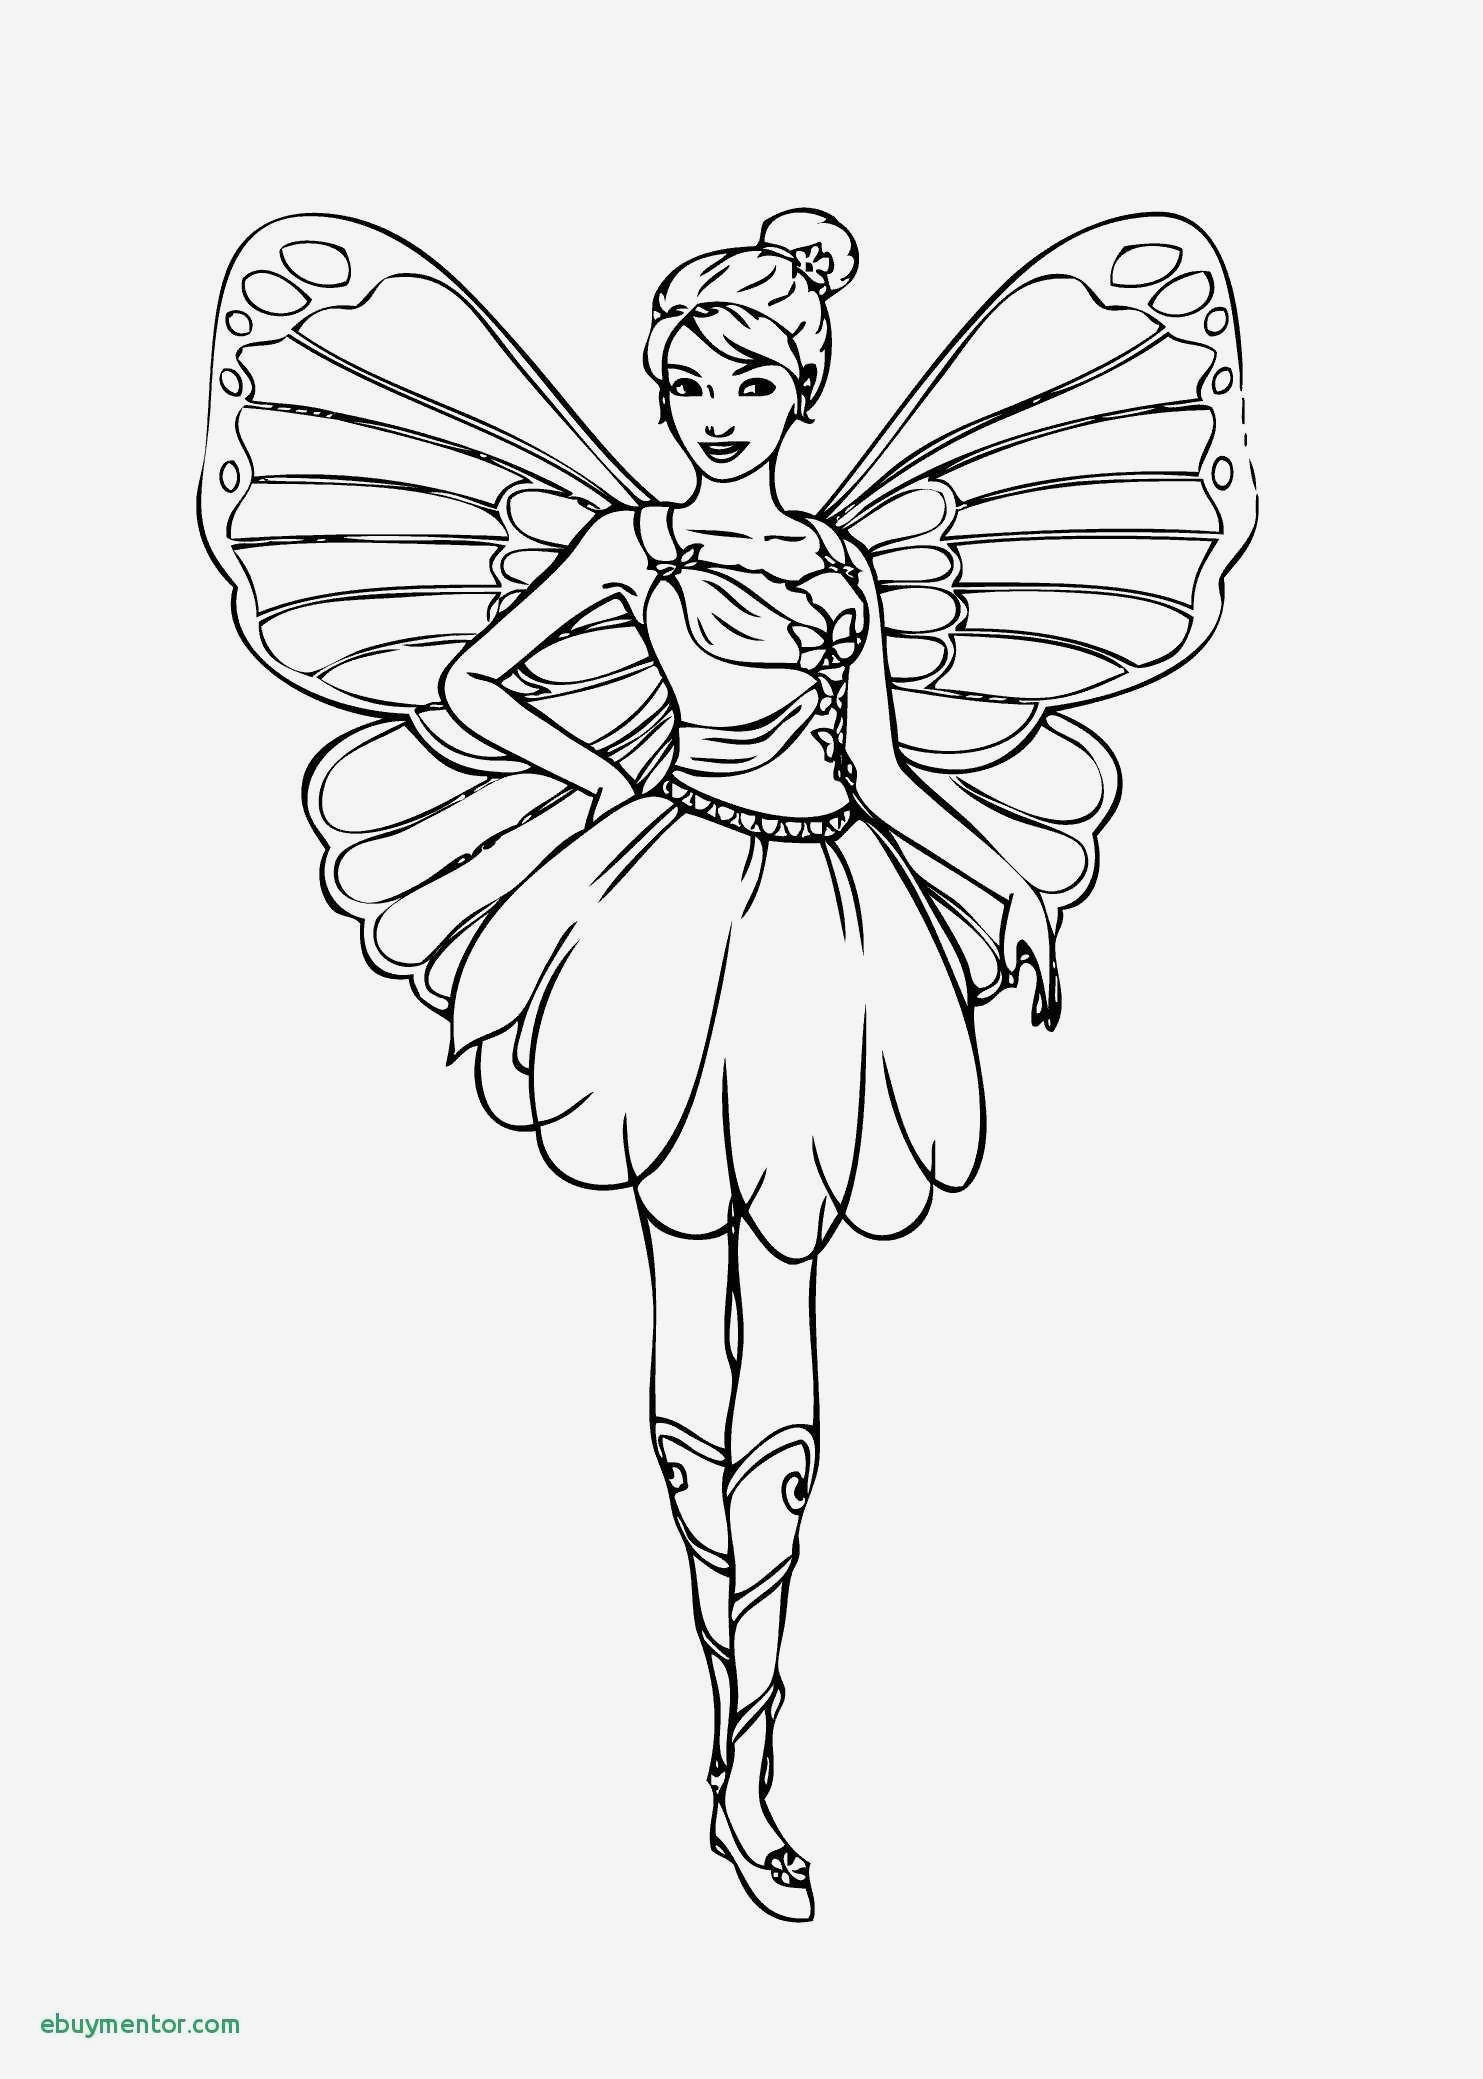 Barbie Superhero Coloring Pages  Collection 10b - Free For Children